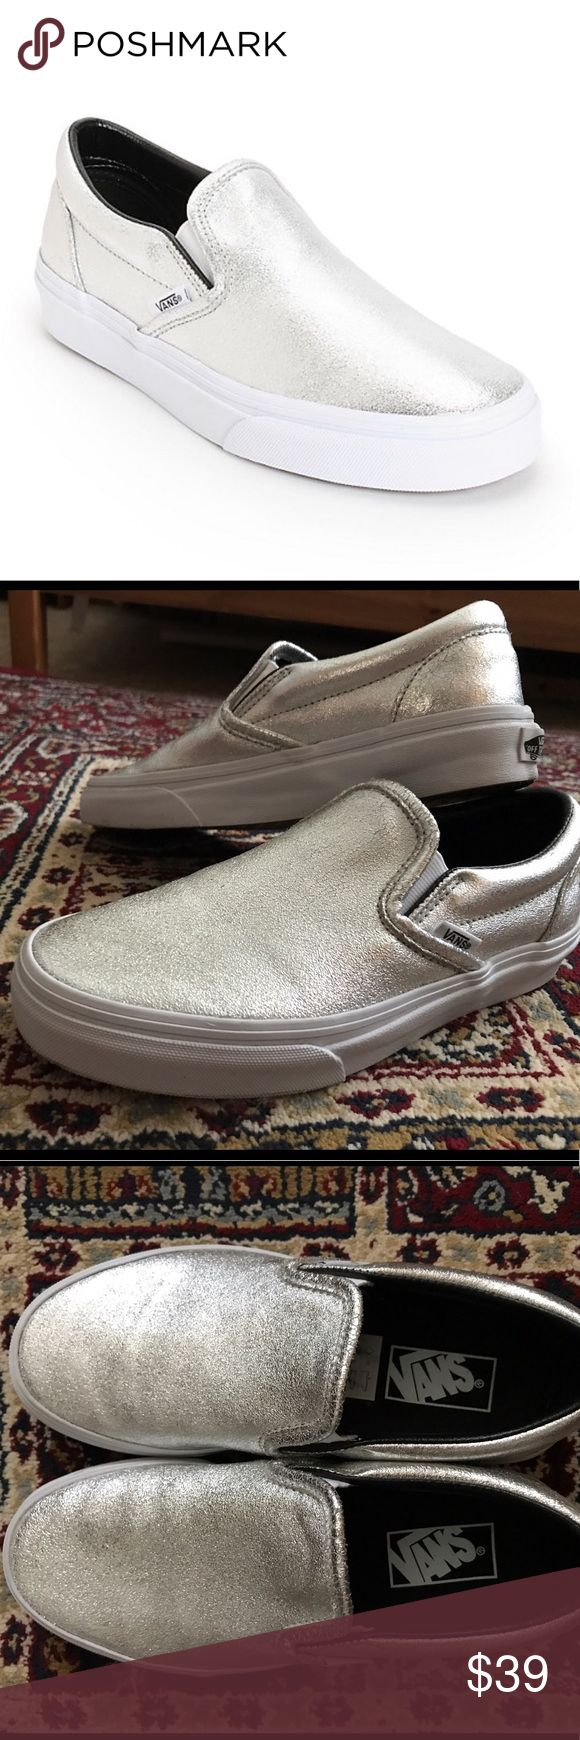 Metallic Silver Slip-On Vans! Cute and convenient slip-on Vans for sale! They were purchased from Nordstrom and worn only twice but are too big for me. No trades. Open to offers! Vans Shoes Sneakers